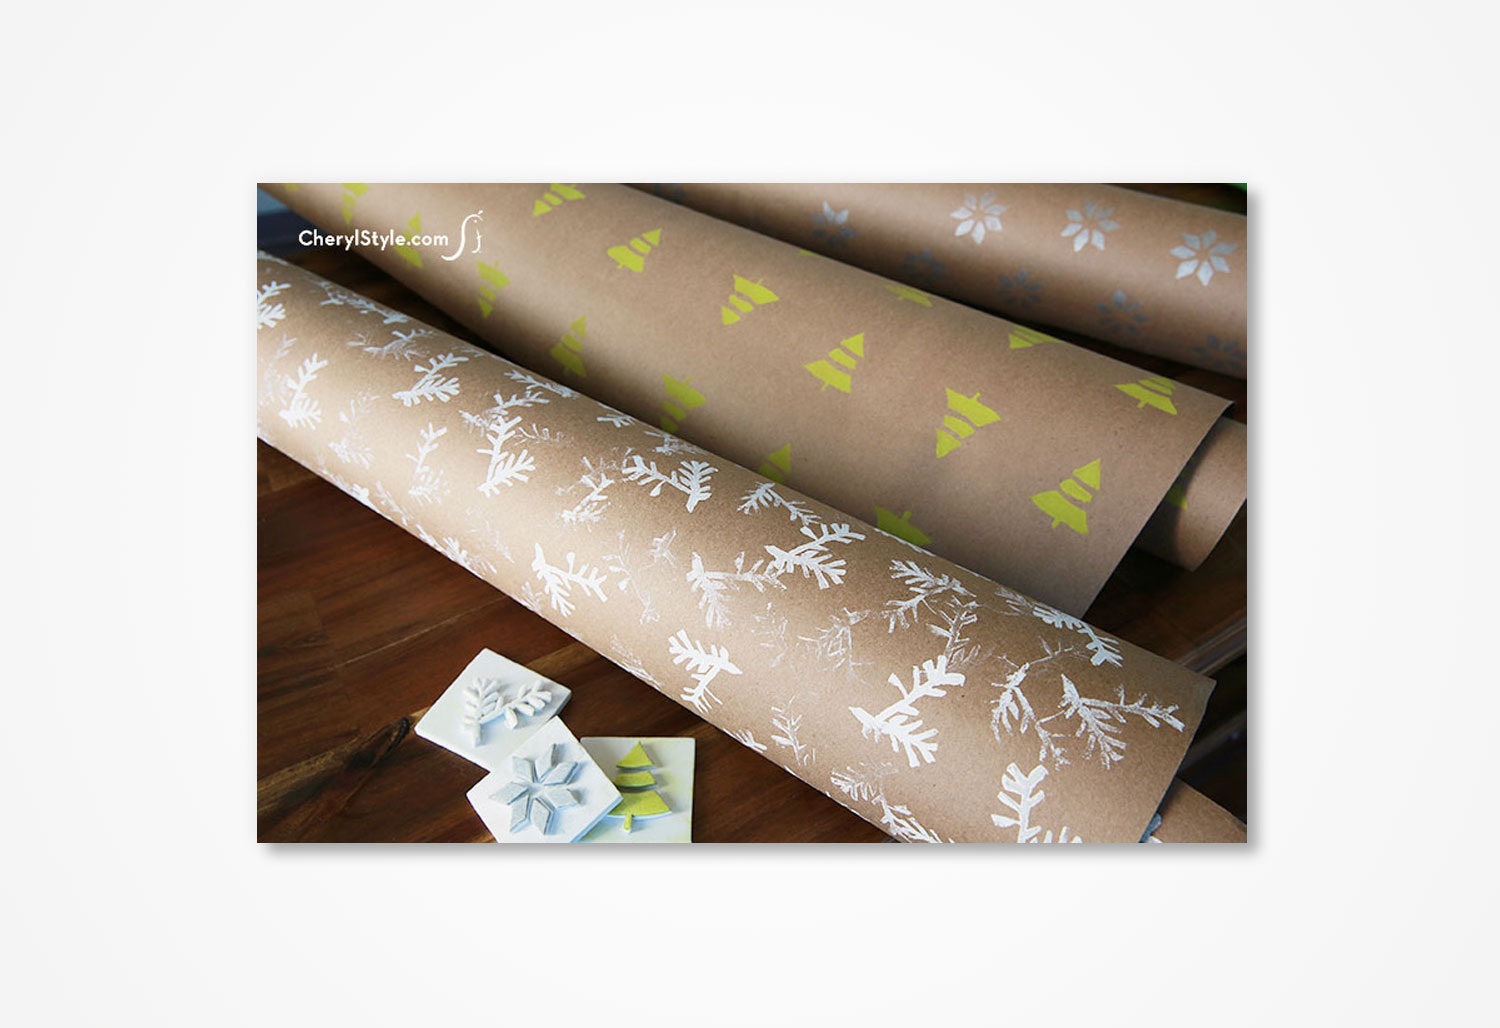 cs-stamped-gift-wrap.jpg